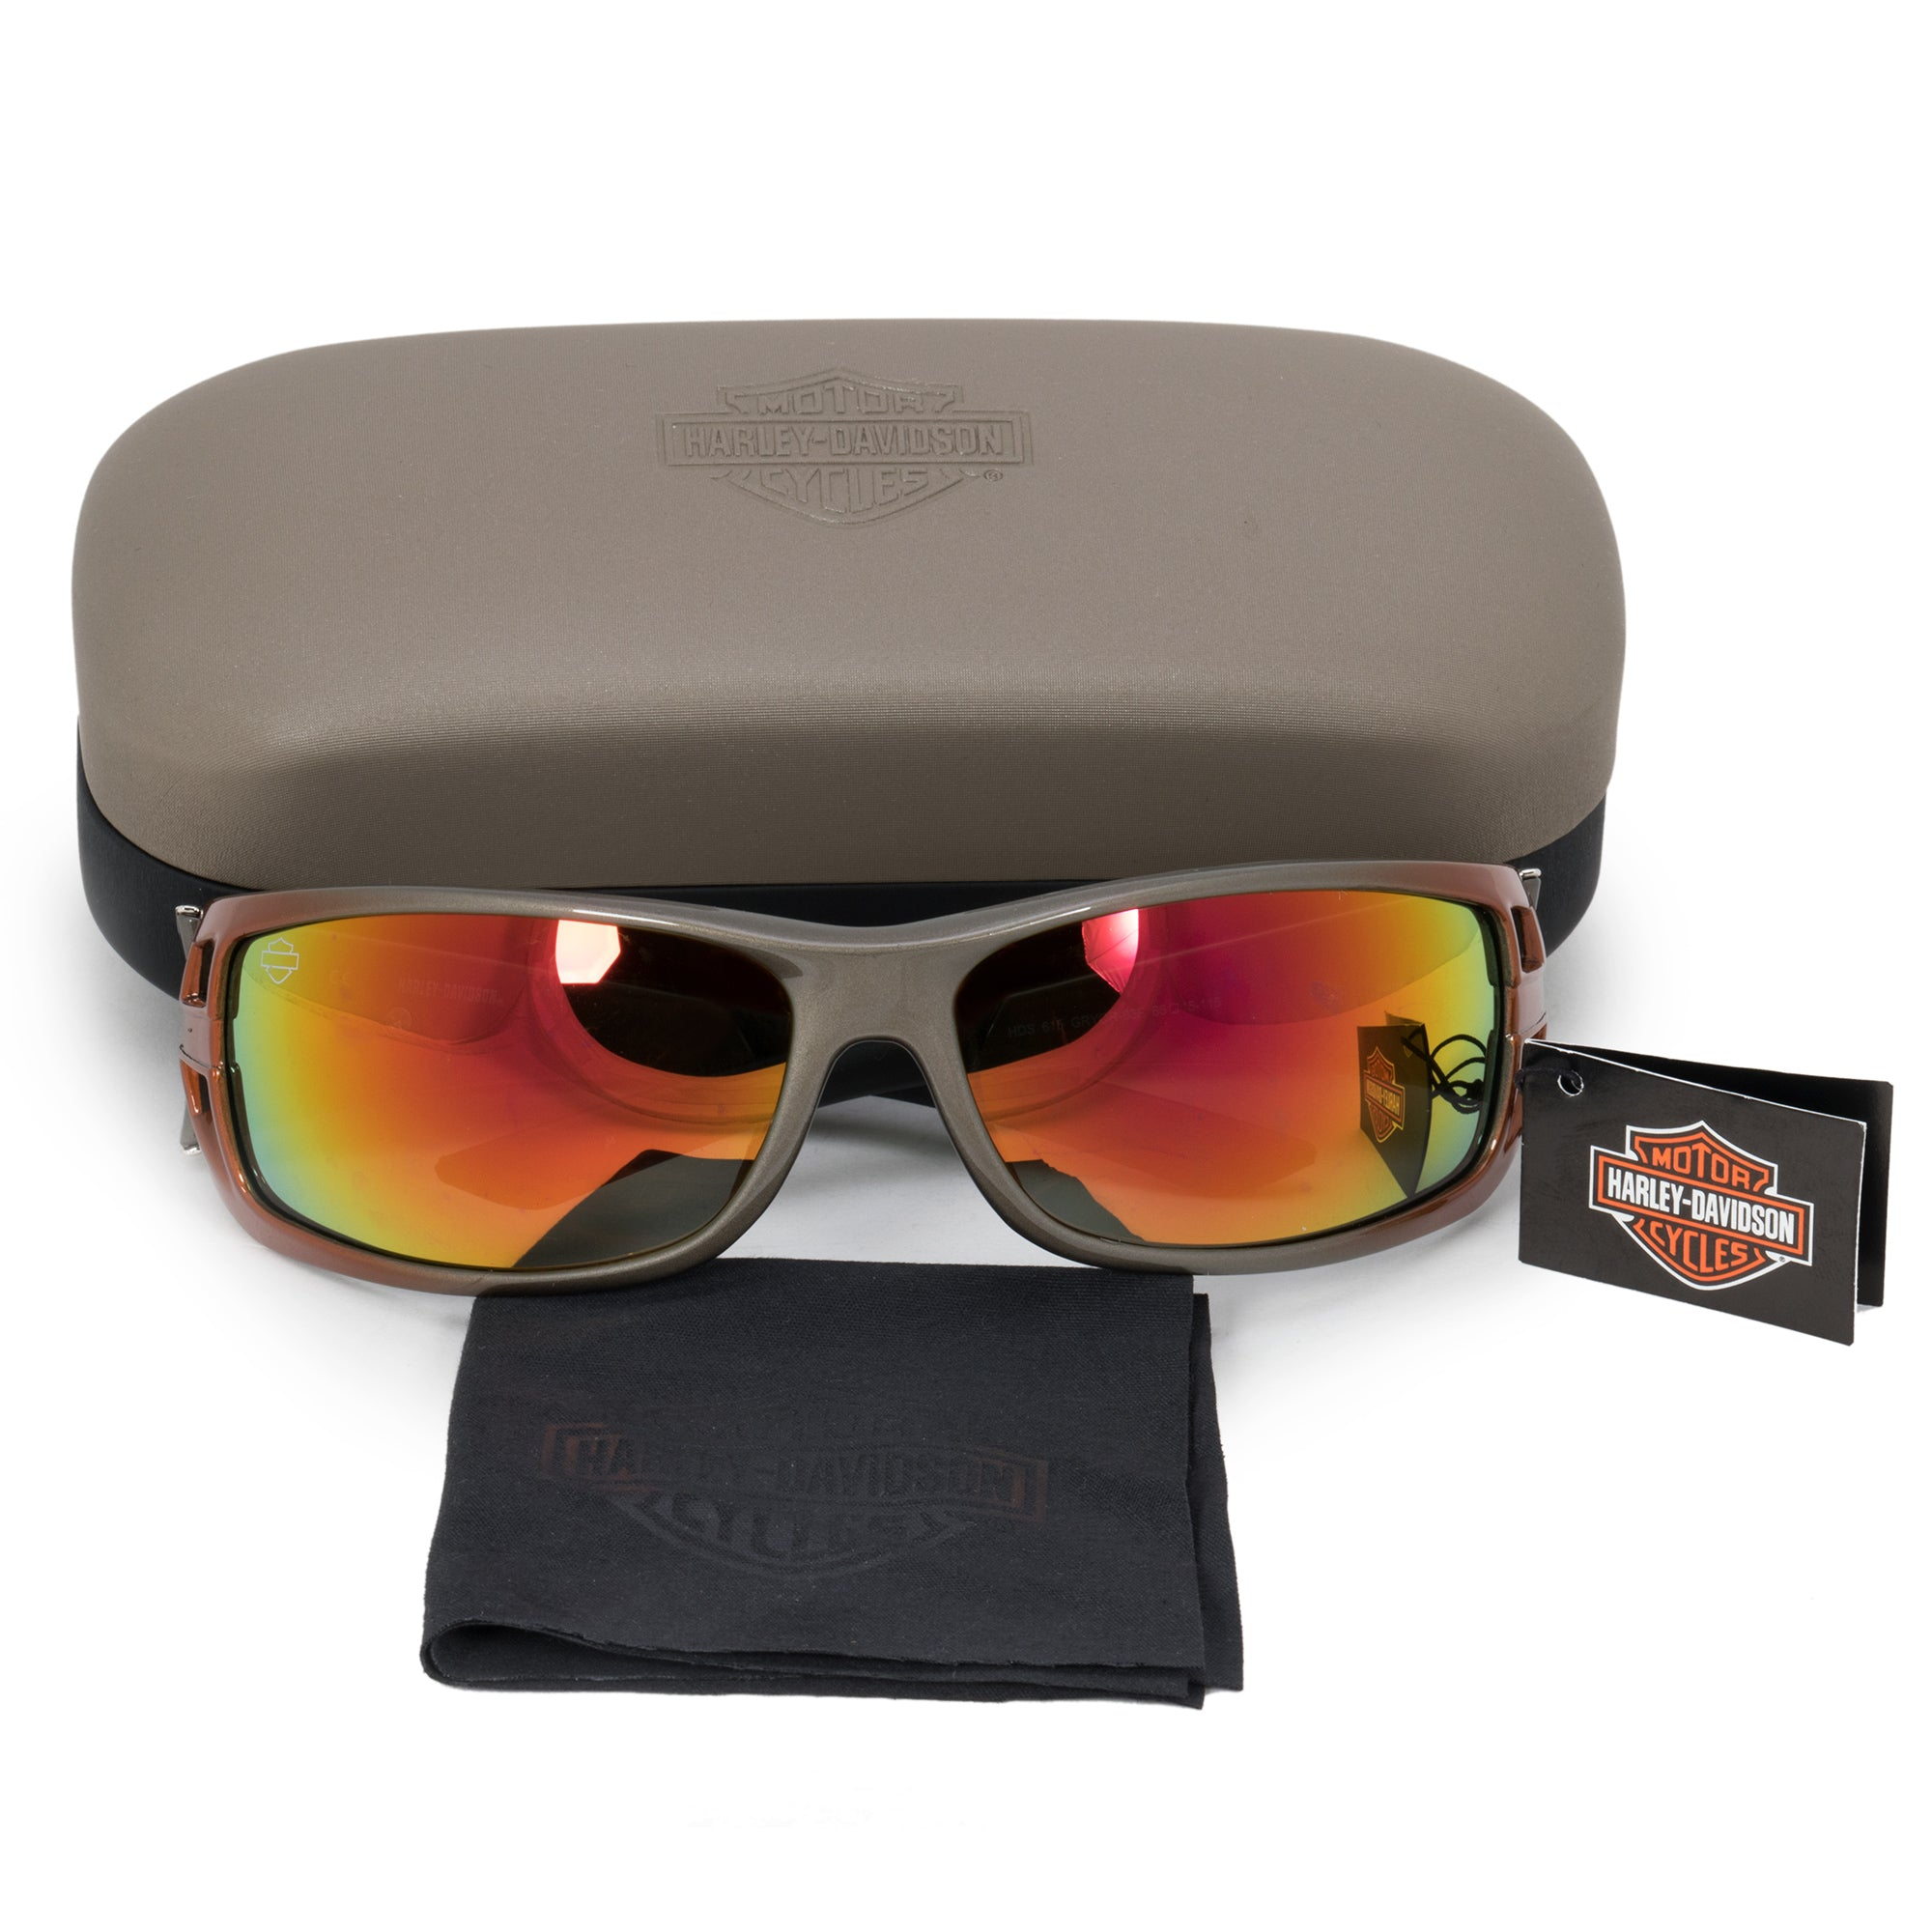 Harley Davidson Rectangle Sunglasses HDS0615 GY0R 83F 65